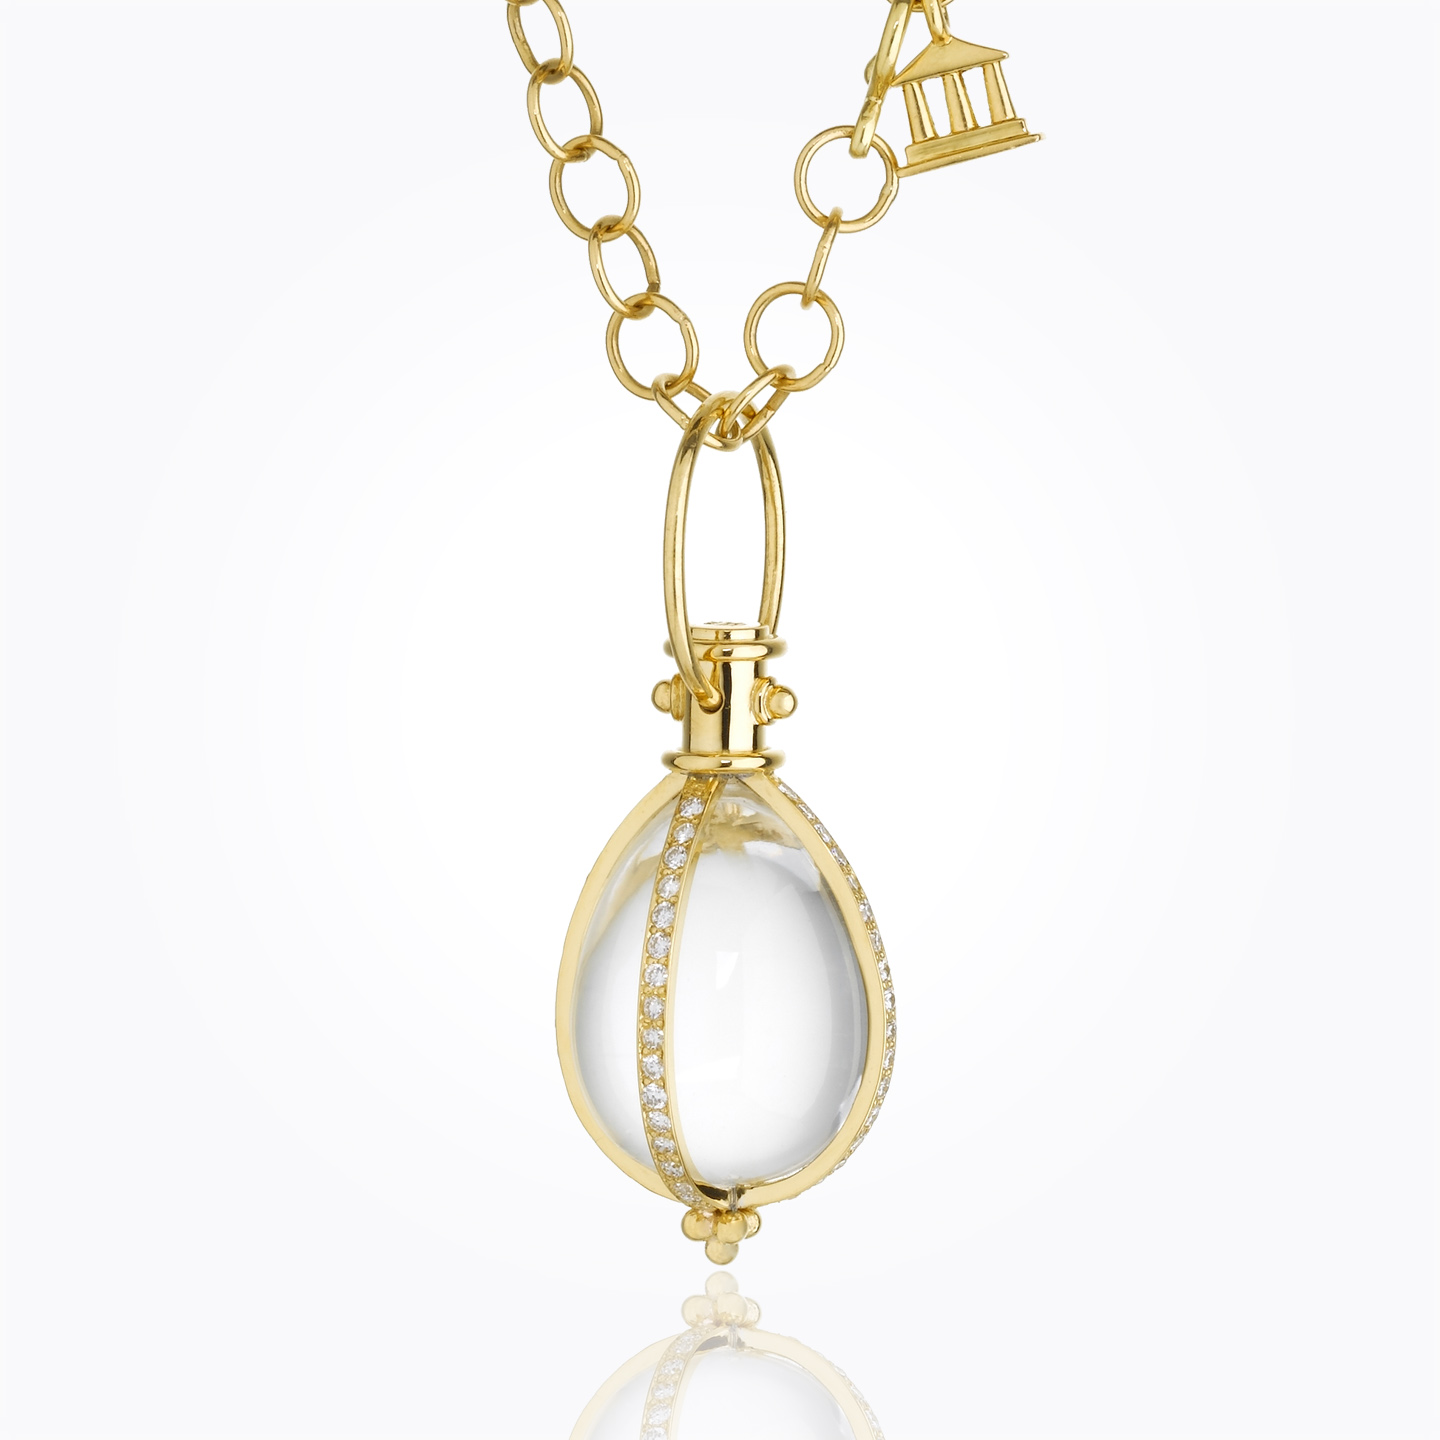 Temple St. Clair 18K Yellow Gold 1.02cts  Diamond Gold Pendants / Charms P51801-E18PV